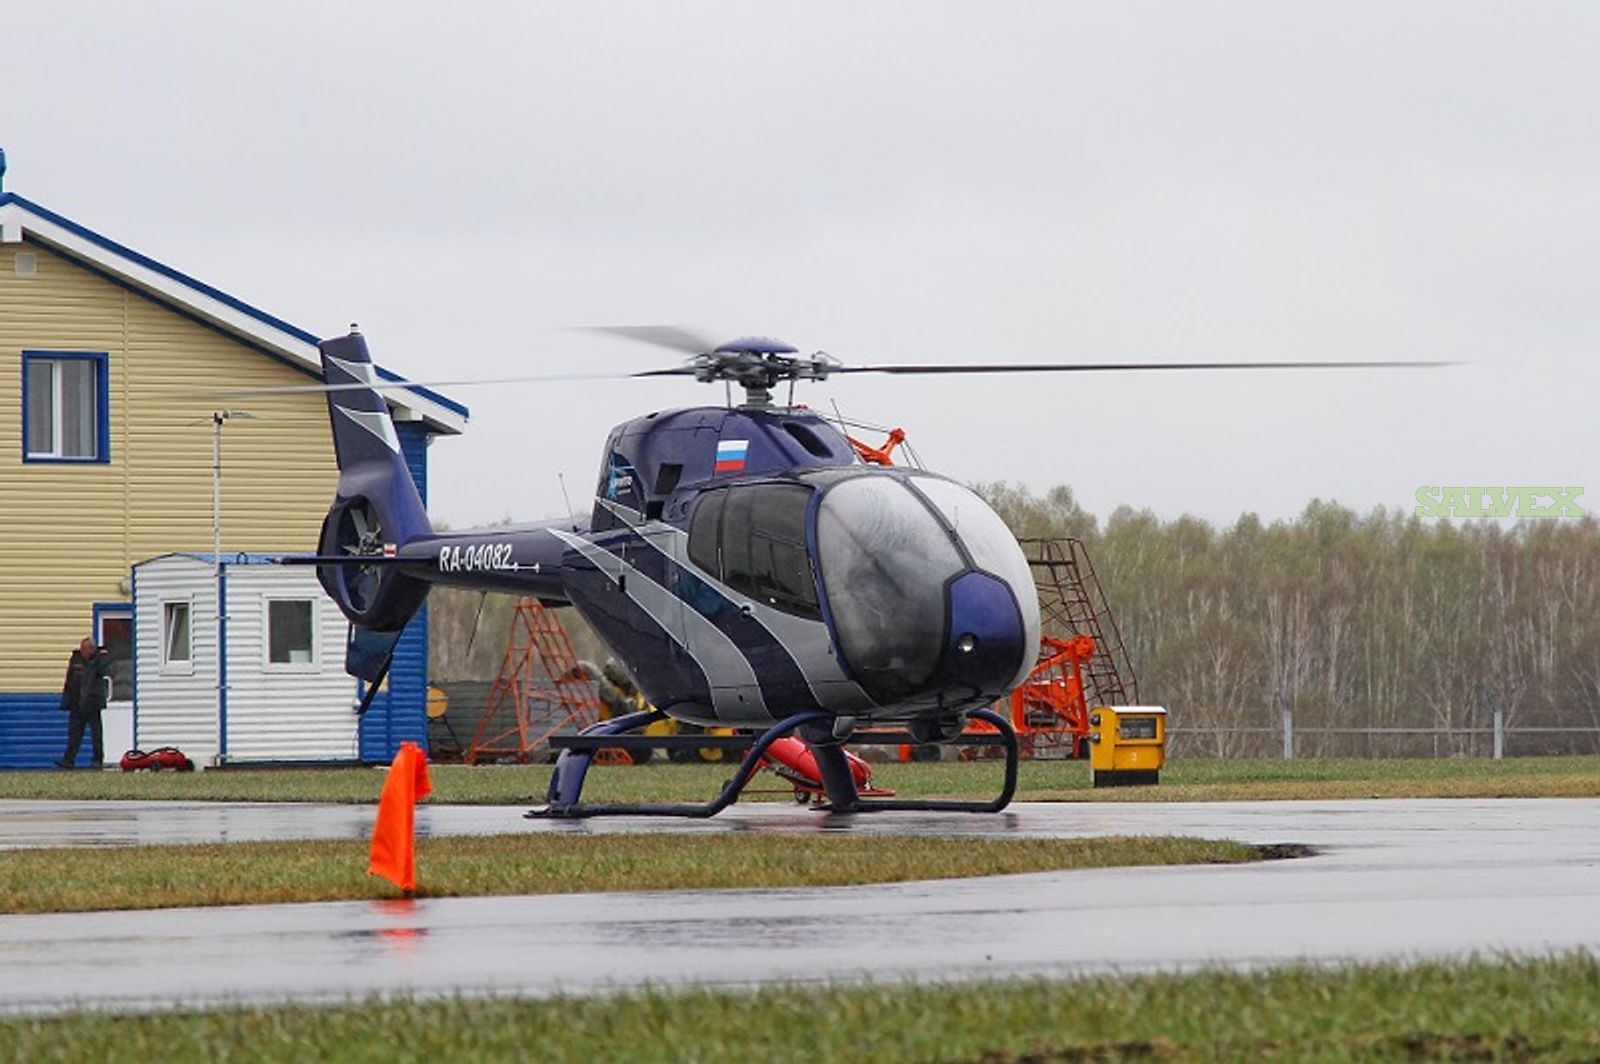 EC-120B Helicopter YOM 2008